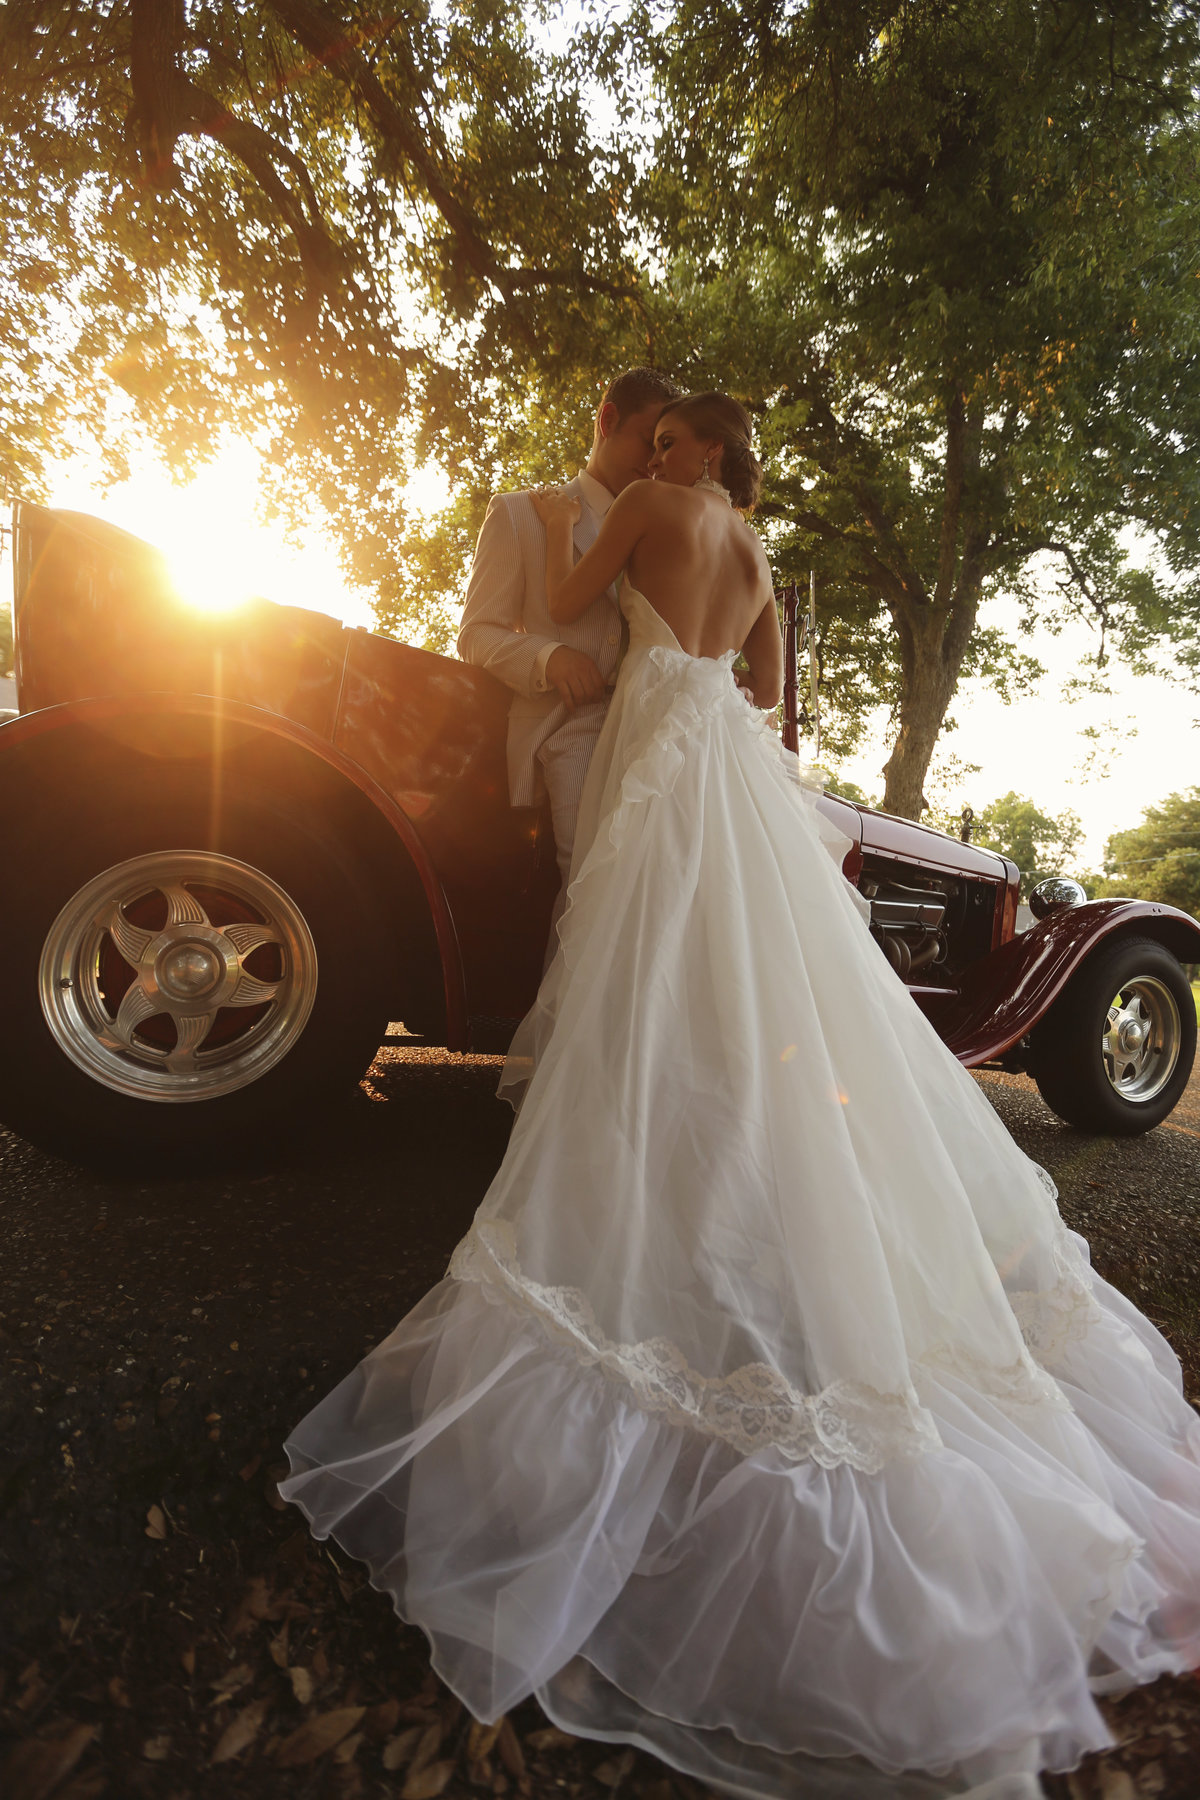 Bride with backless dress hugs her new husband at sunset leaning agains an antique getaway car.